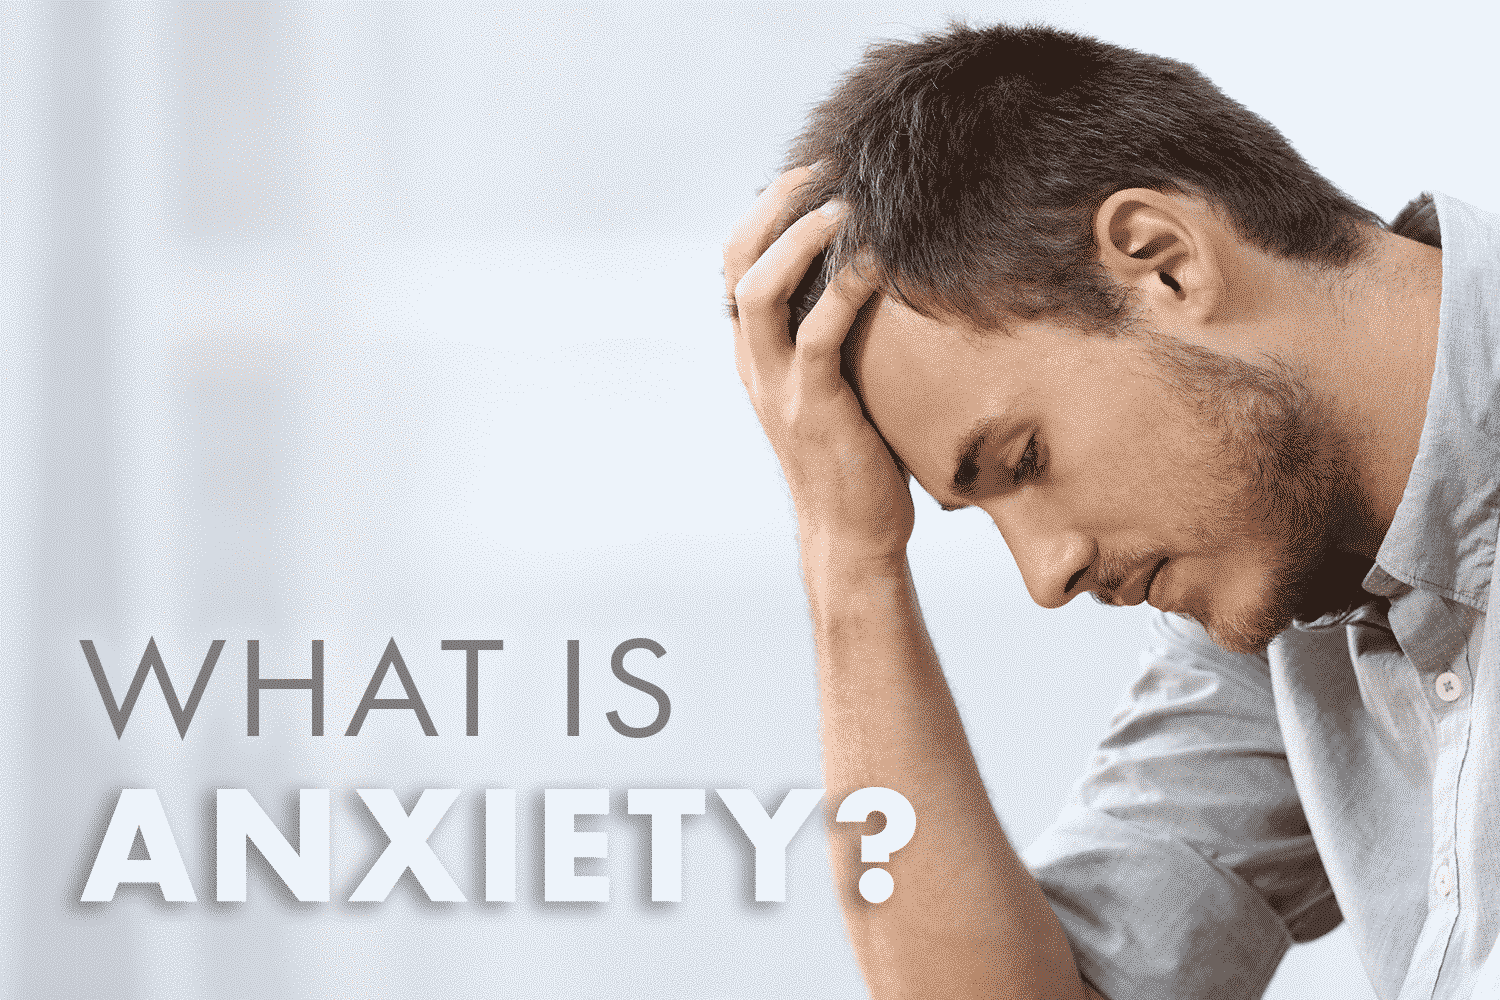 Dragonfly CBD What is Anxiety Blog cover Image, man holding head in hand looking anxious